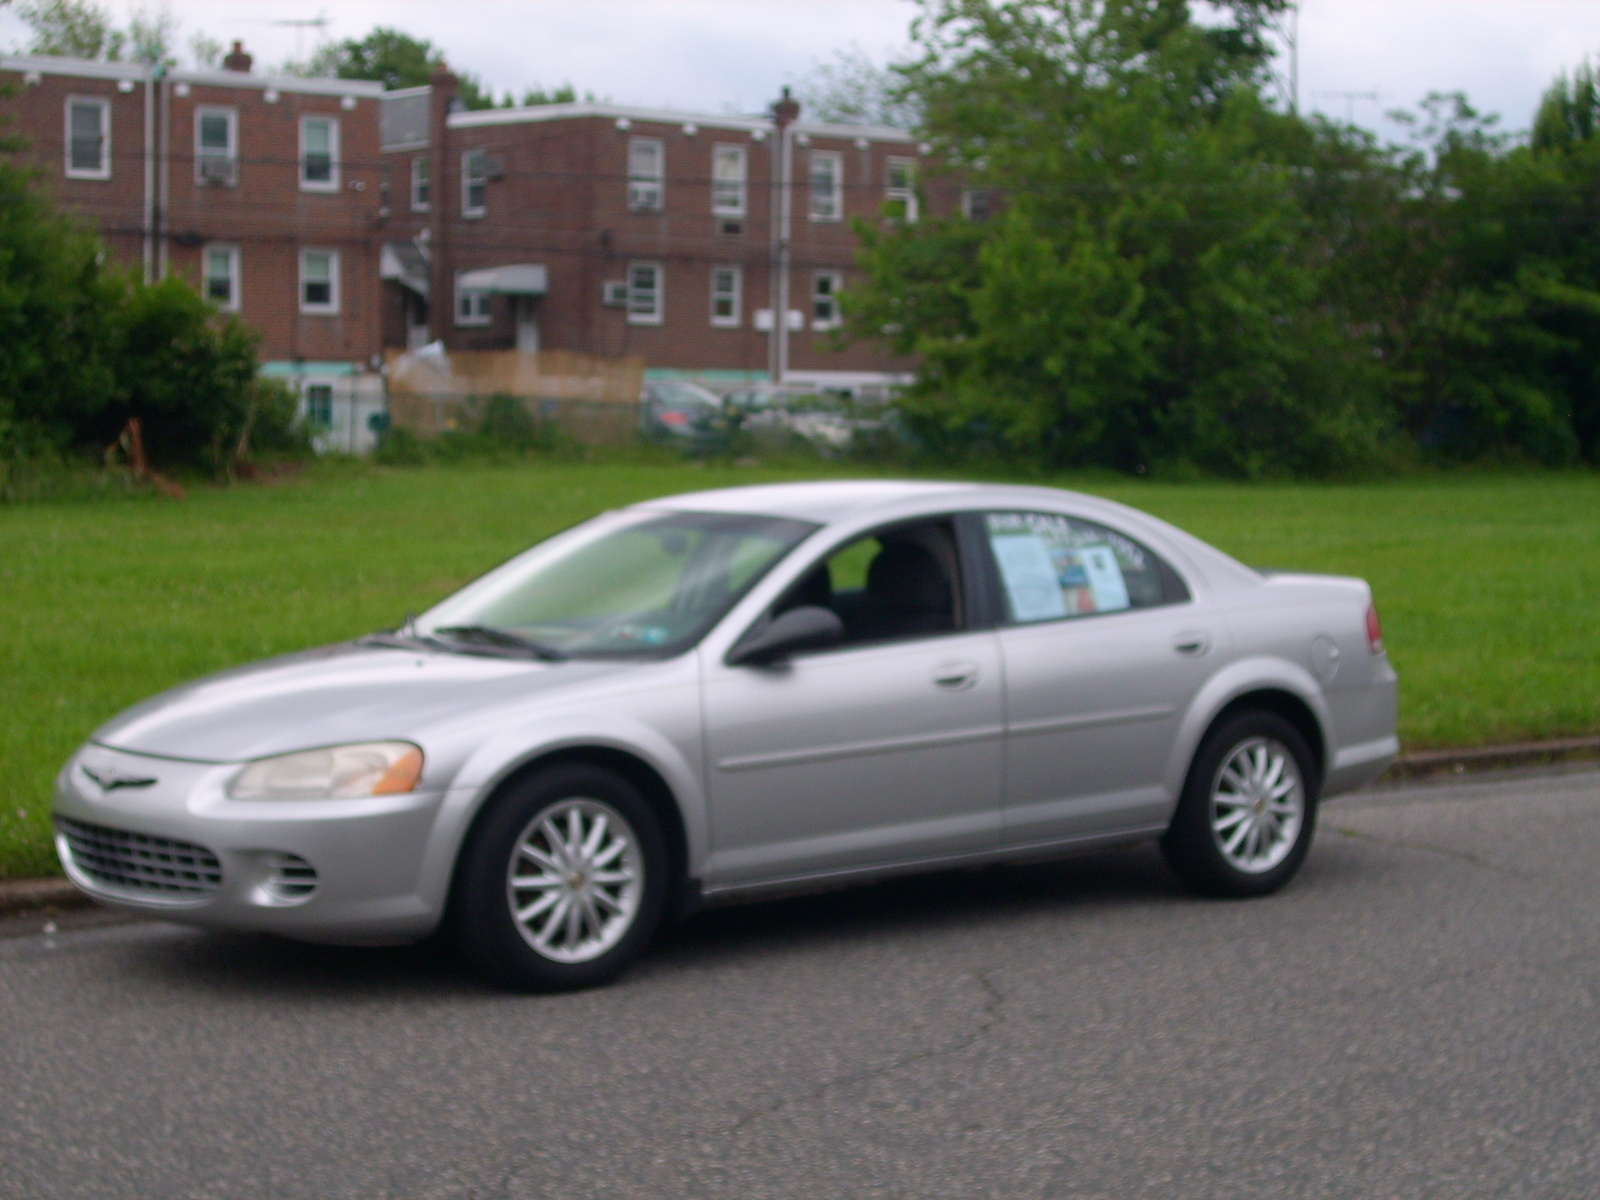 Used Nissan Altima Coupe 2002 Chrysler Sebring - Pictures - CarGurus